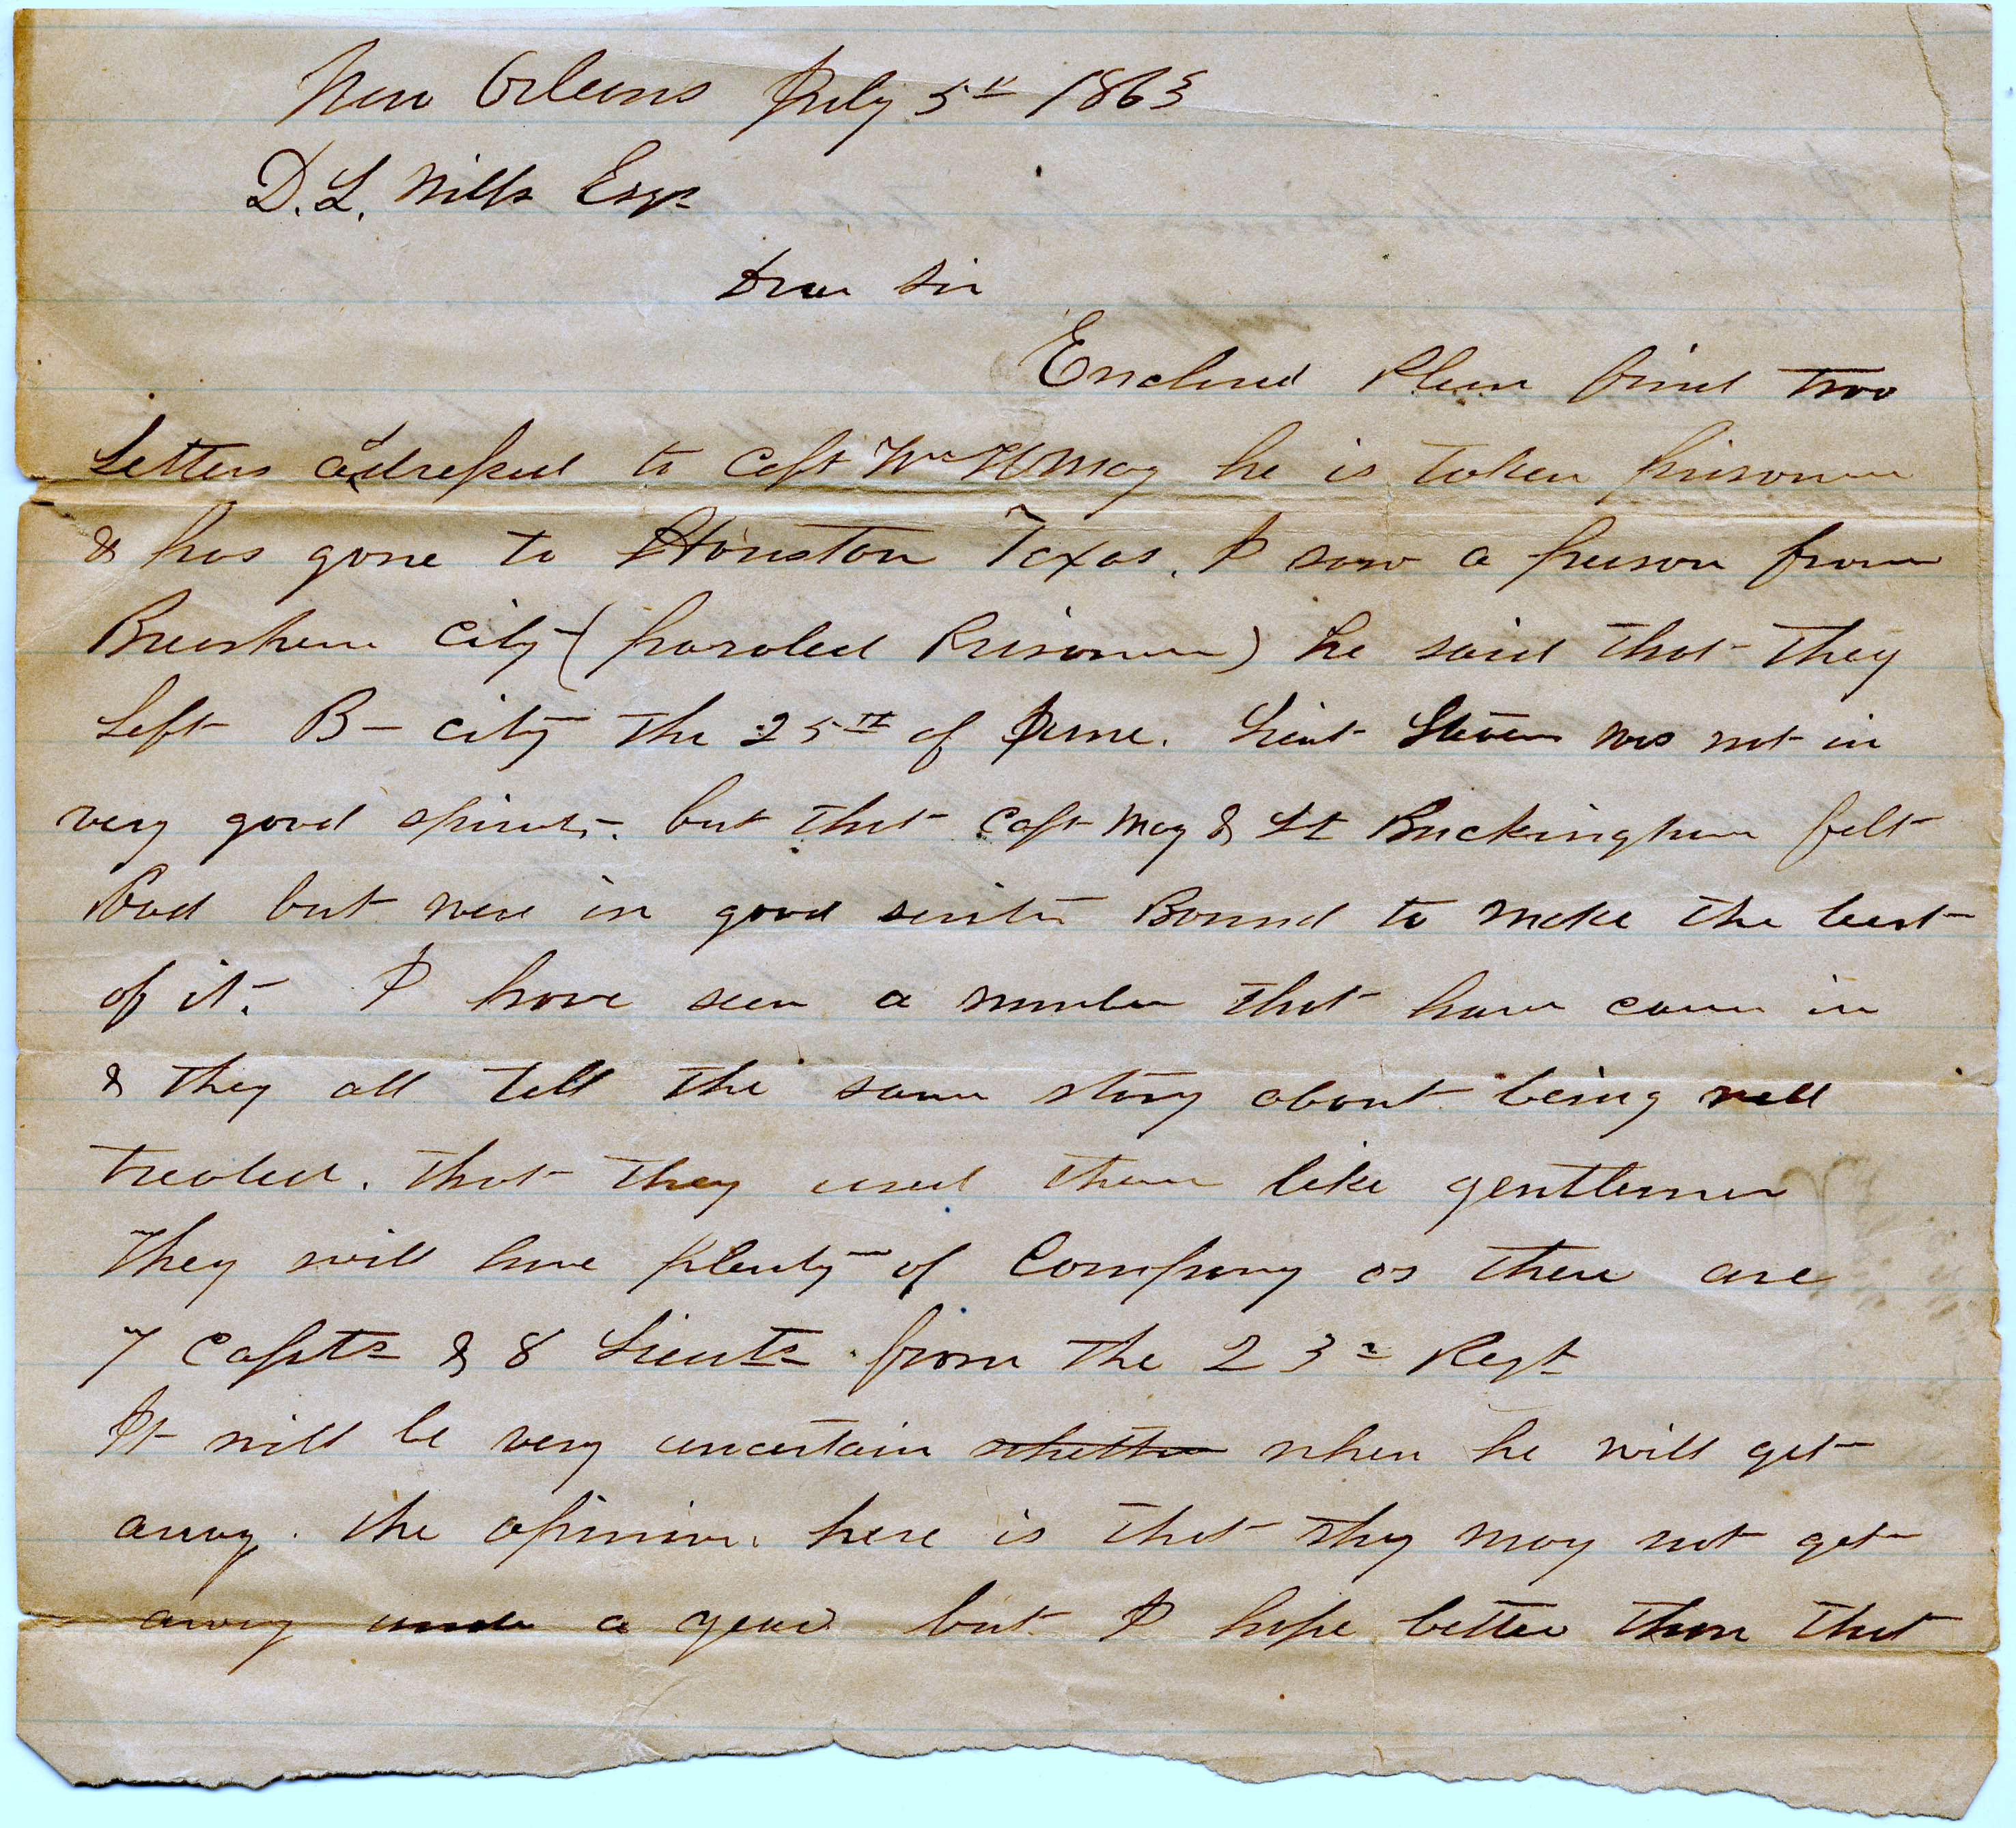 Letter re. Capt. Wm. May, July 5,1863, explaining he has been taken prisoner (p.1)